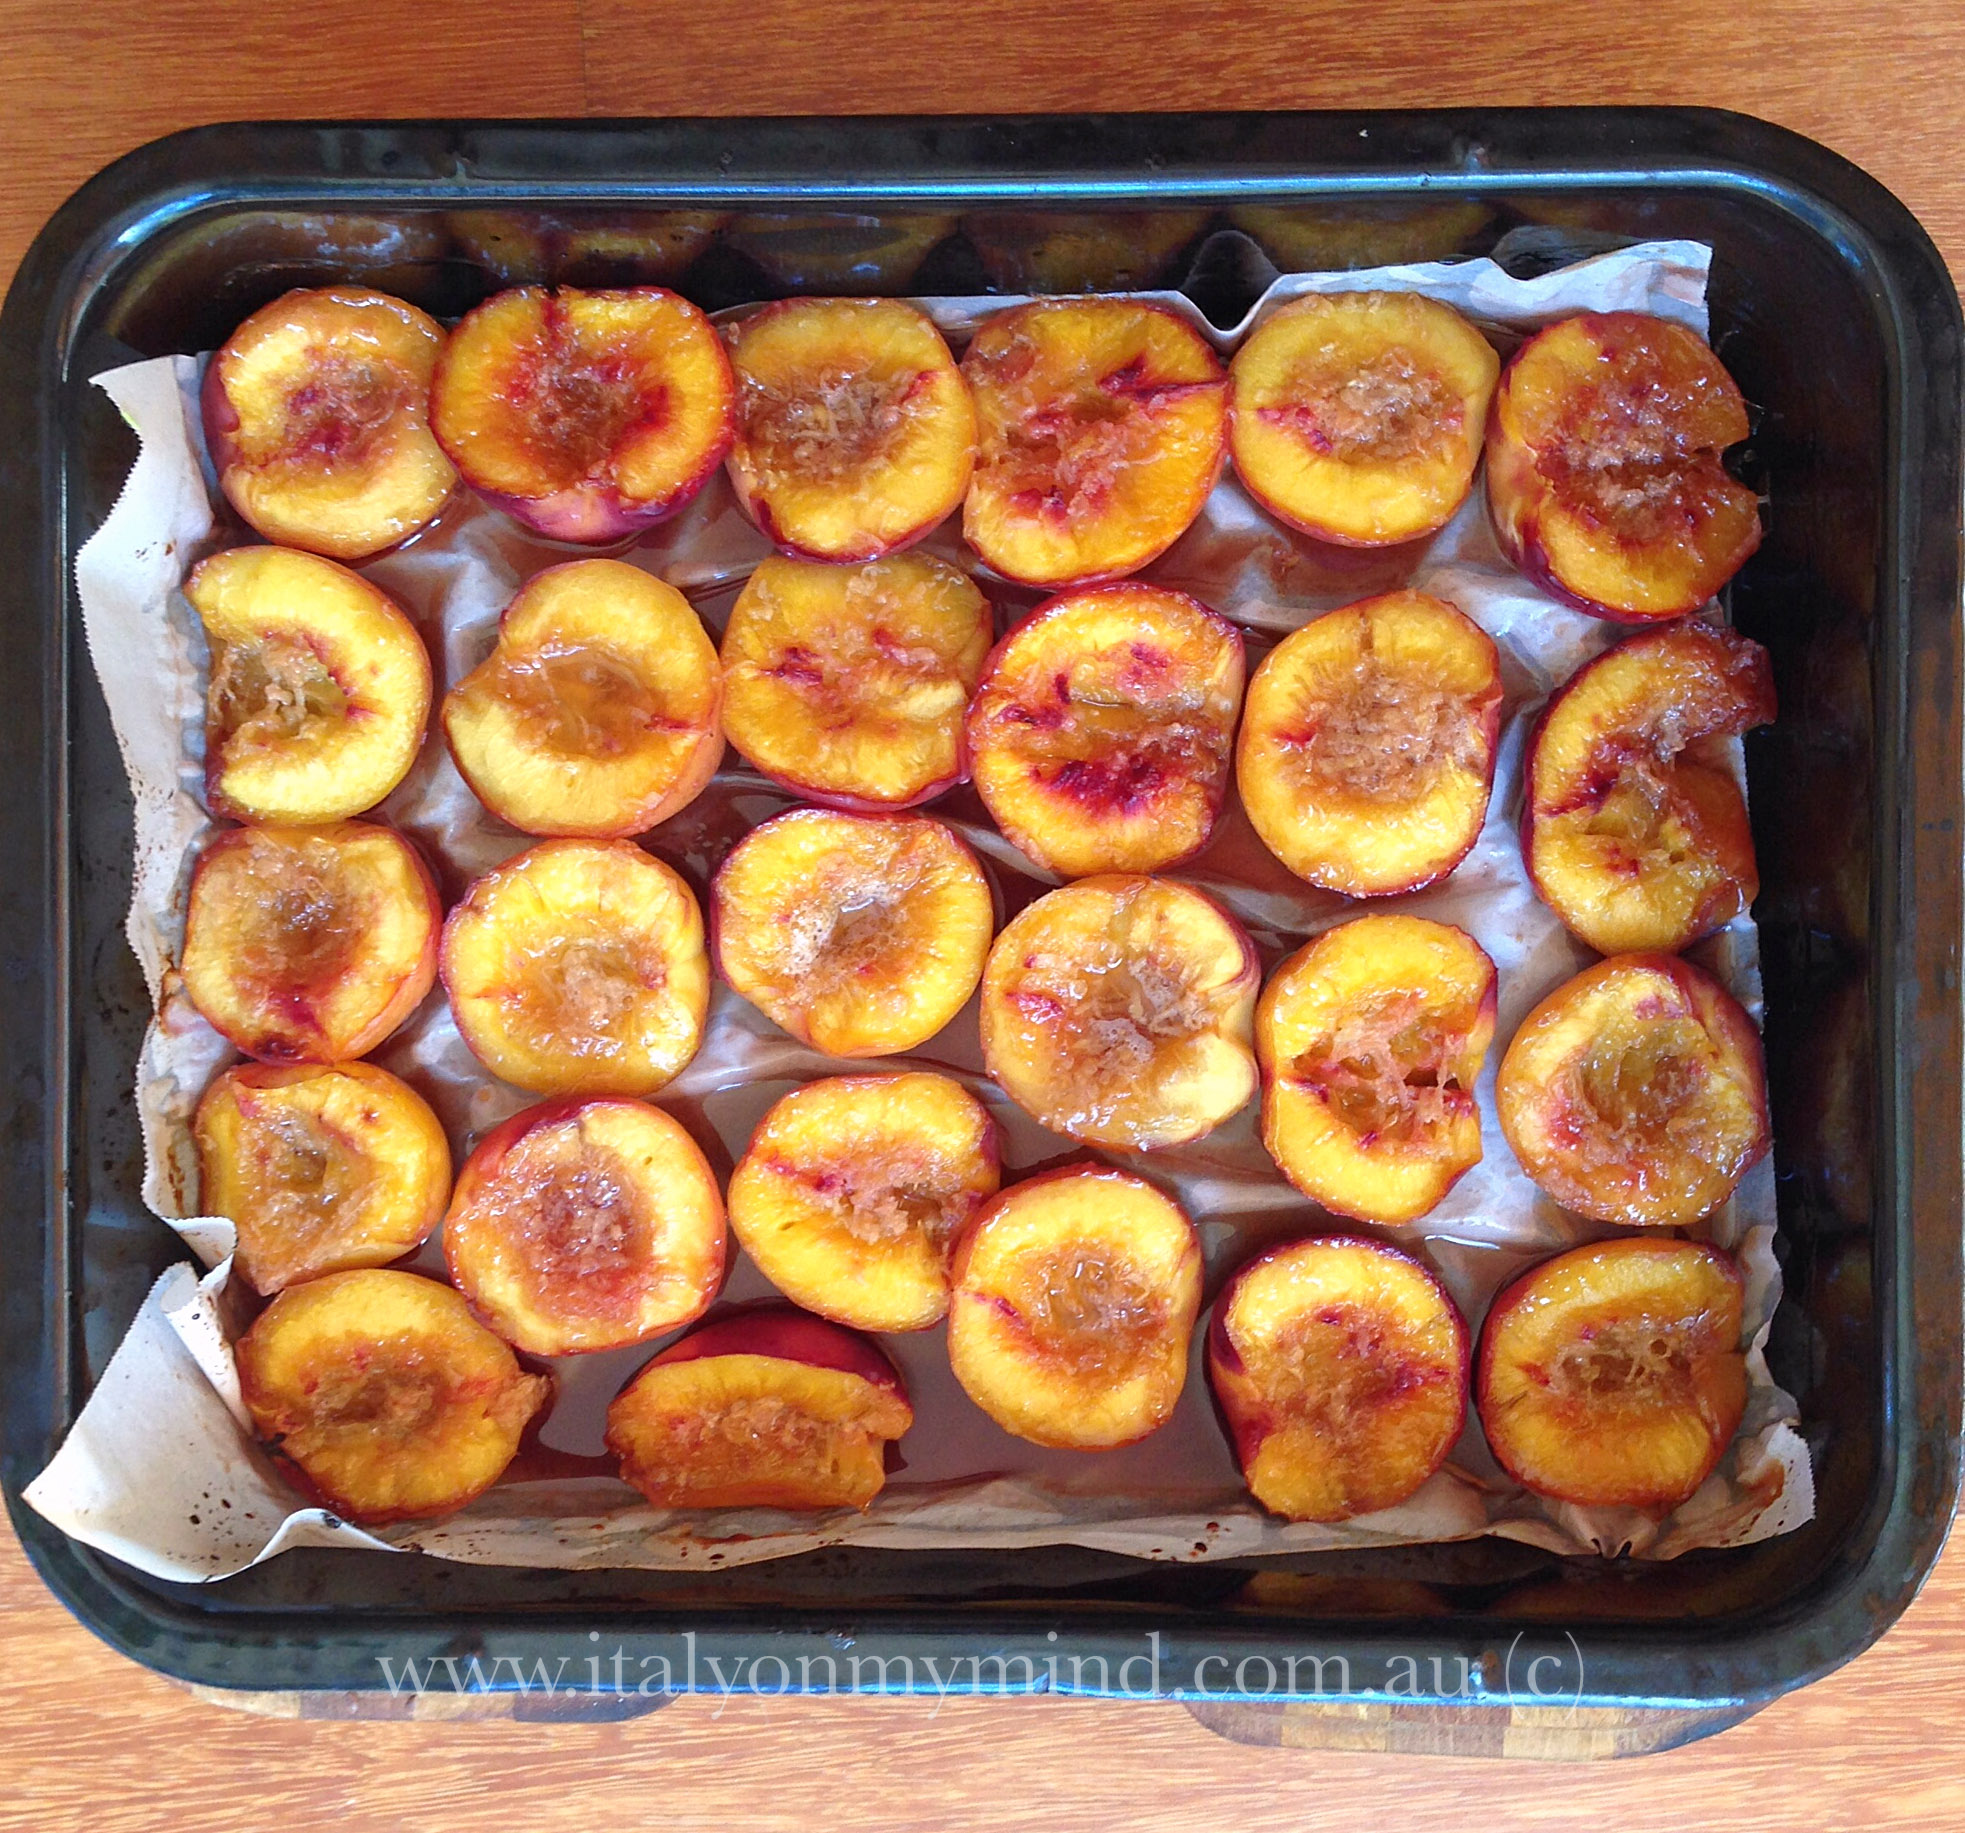 Barbara's baked nectarines – the last fruits of summer